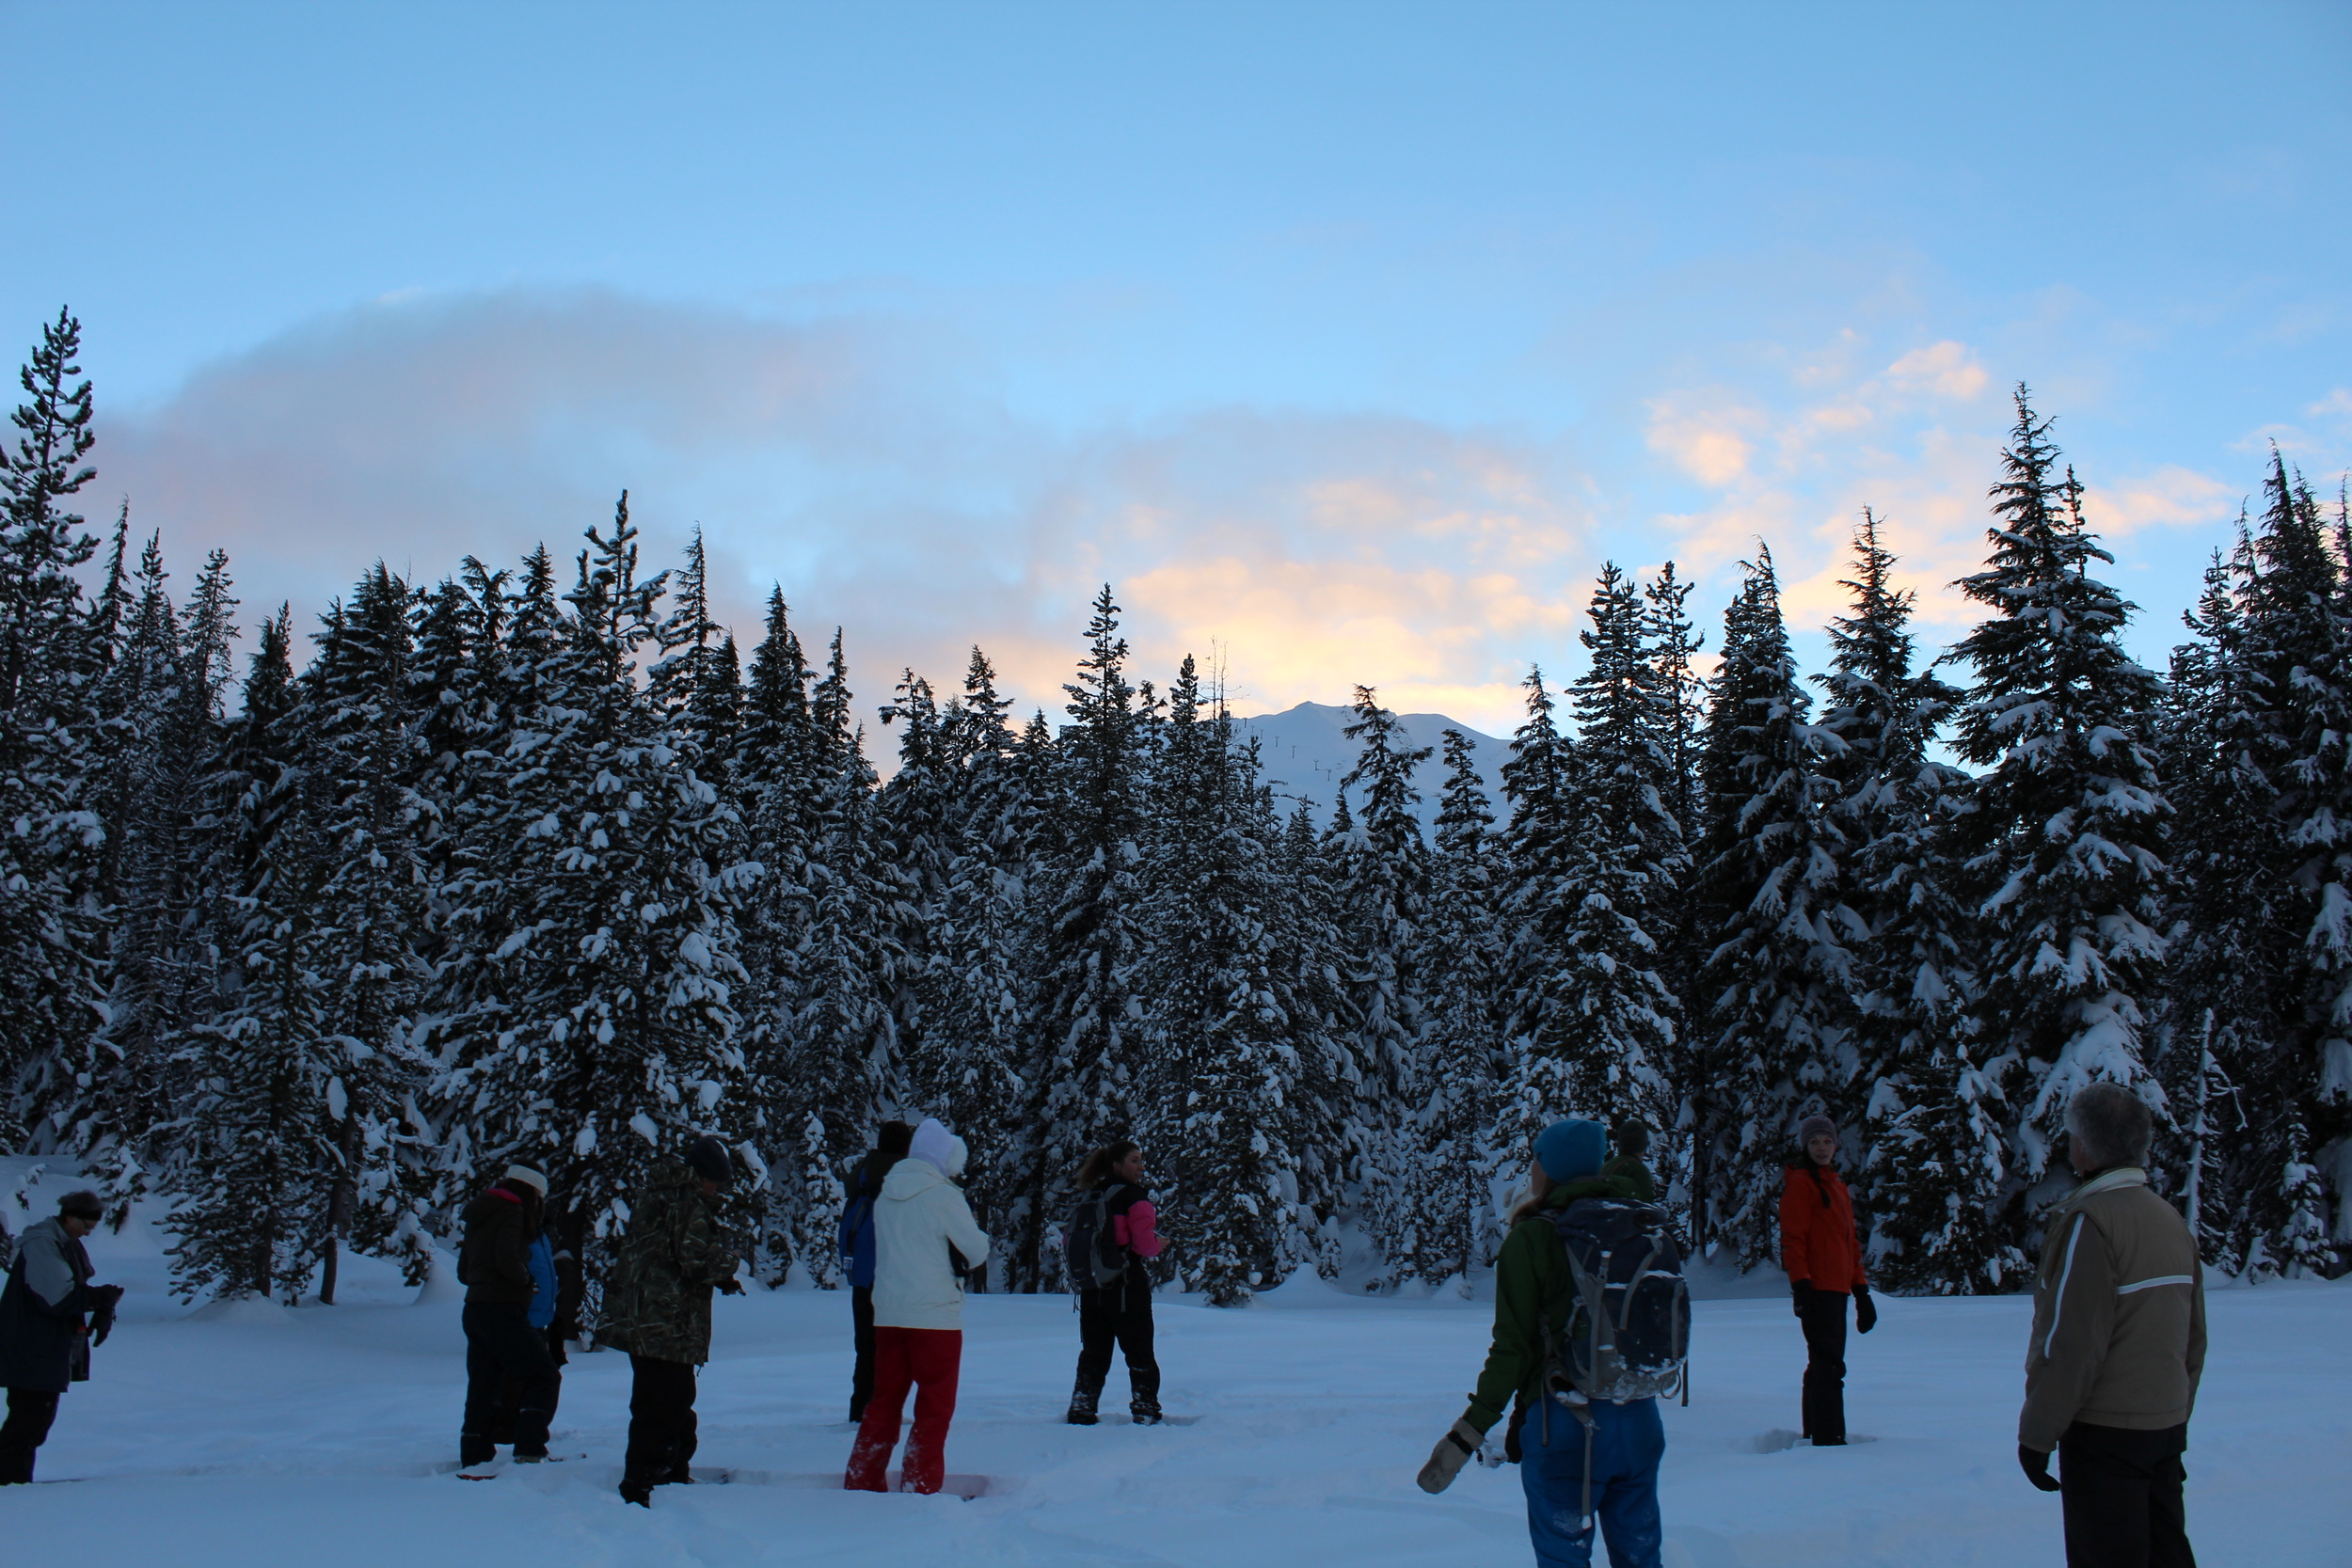 Everyone paused to take in the quiet of the forest and the beauty of the sunset at Mt. Bachelor.